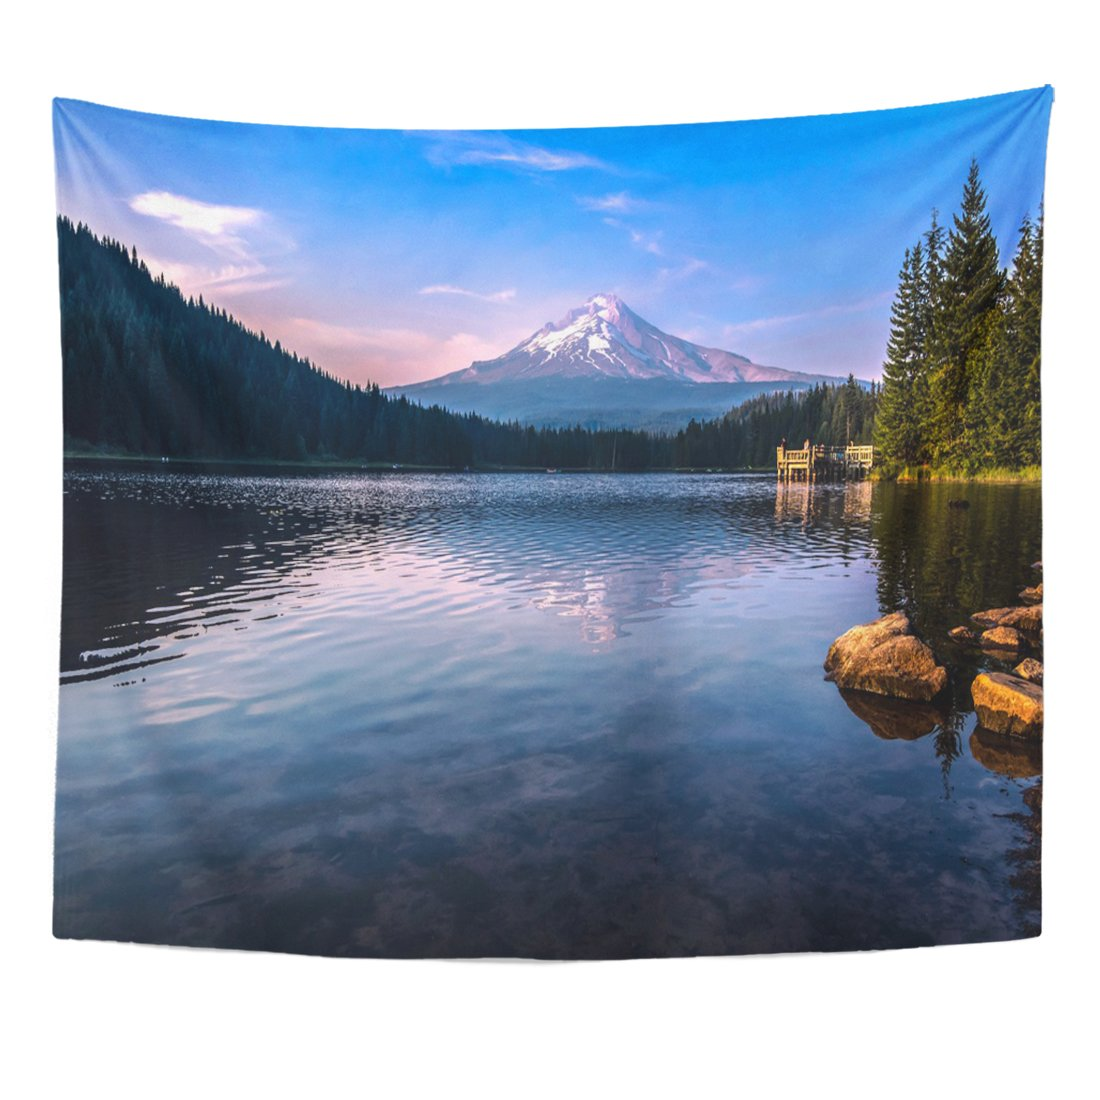 Emvency Tapestry Blue Trillium Mountain Reflections from The Lake America Beautiful Home Decor Wall Hanging for Living Room Bedroom Dorm 50x60 Inches by Emvency (Image #1)